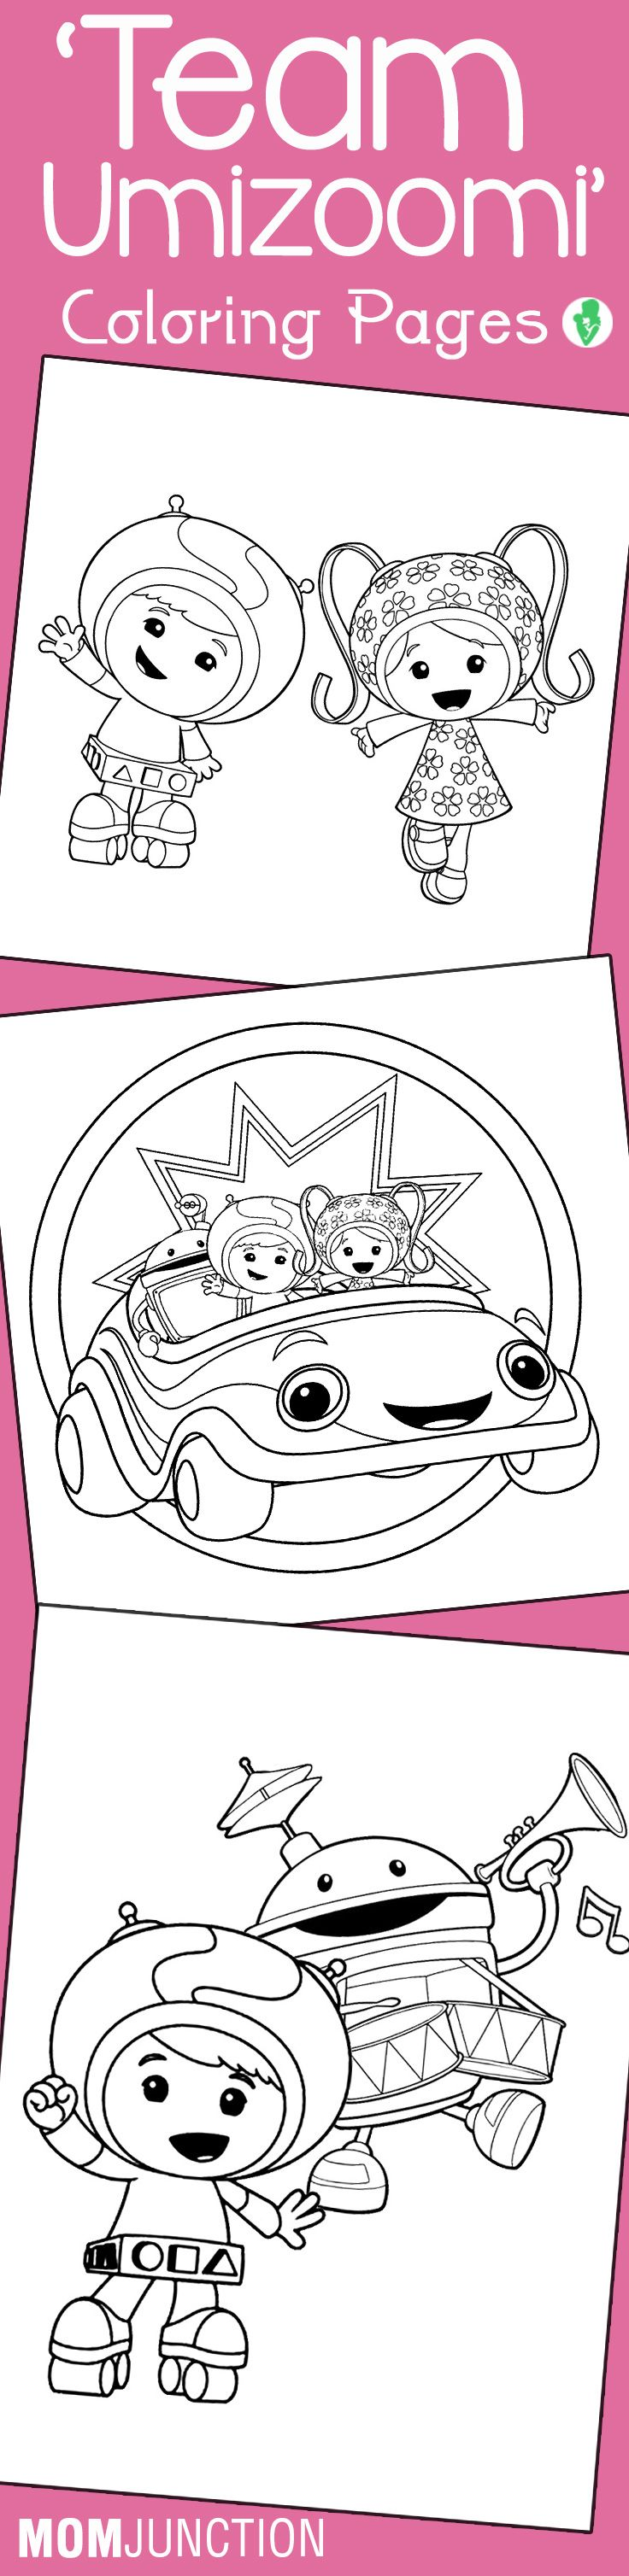 10 Best 'Team Umizoomi' Coloring Pages For Your Toddler ...